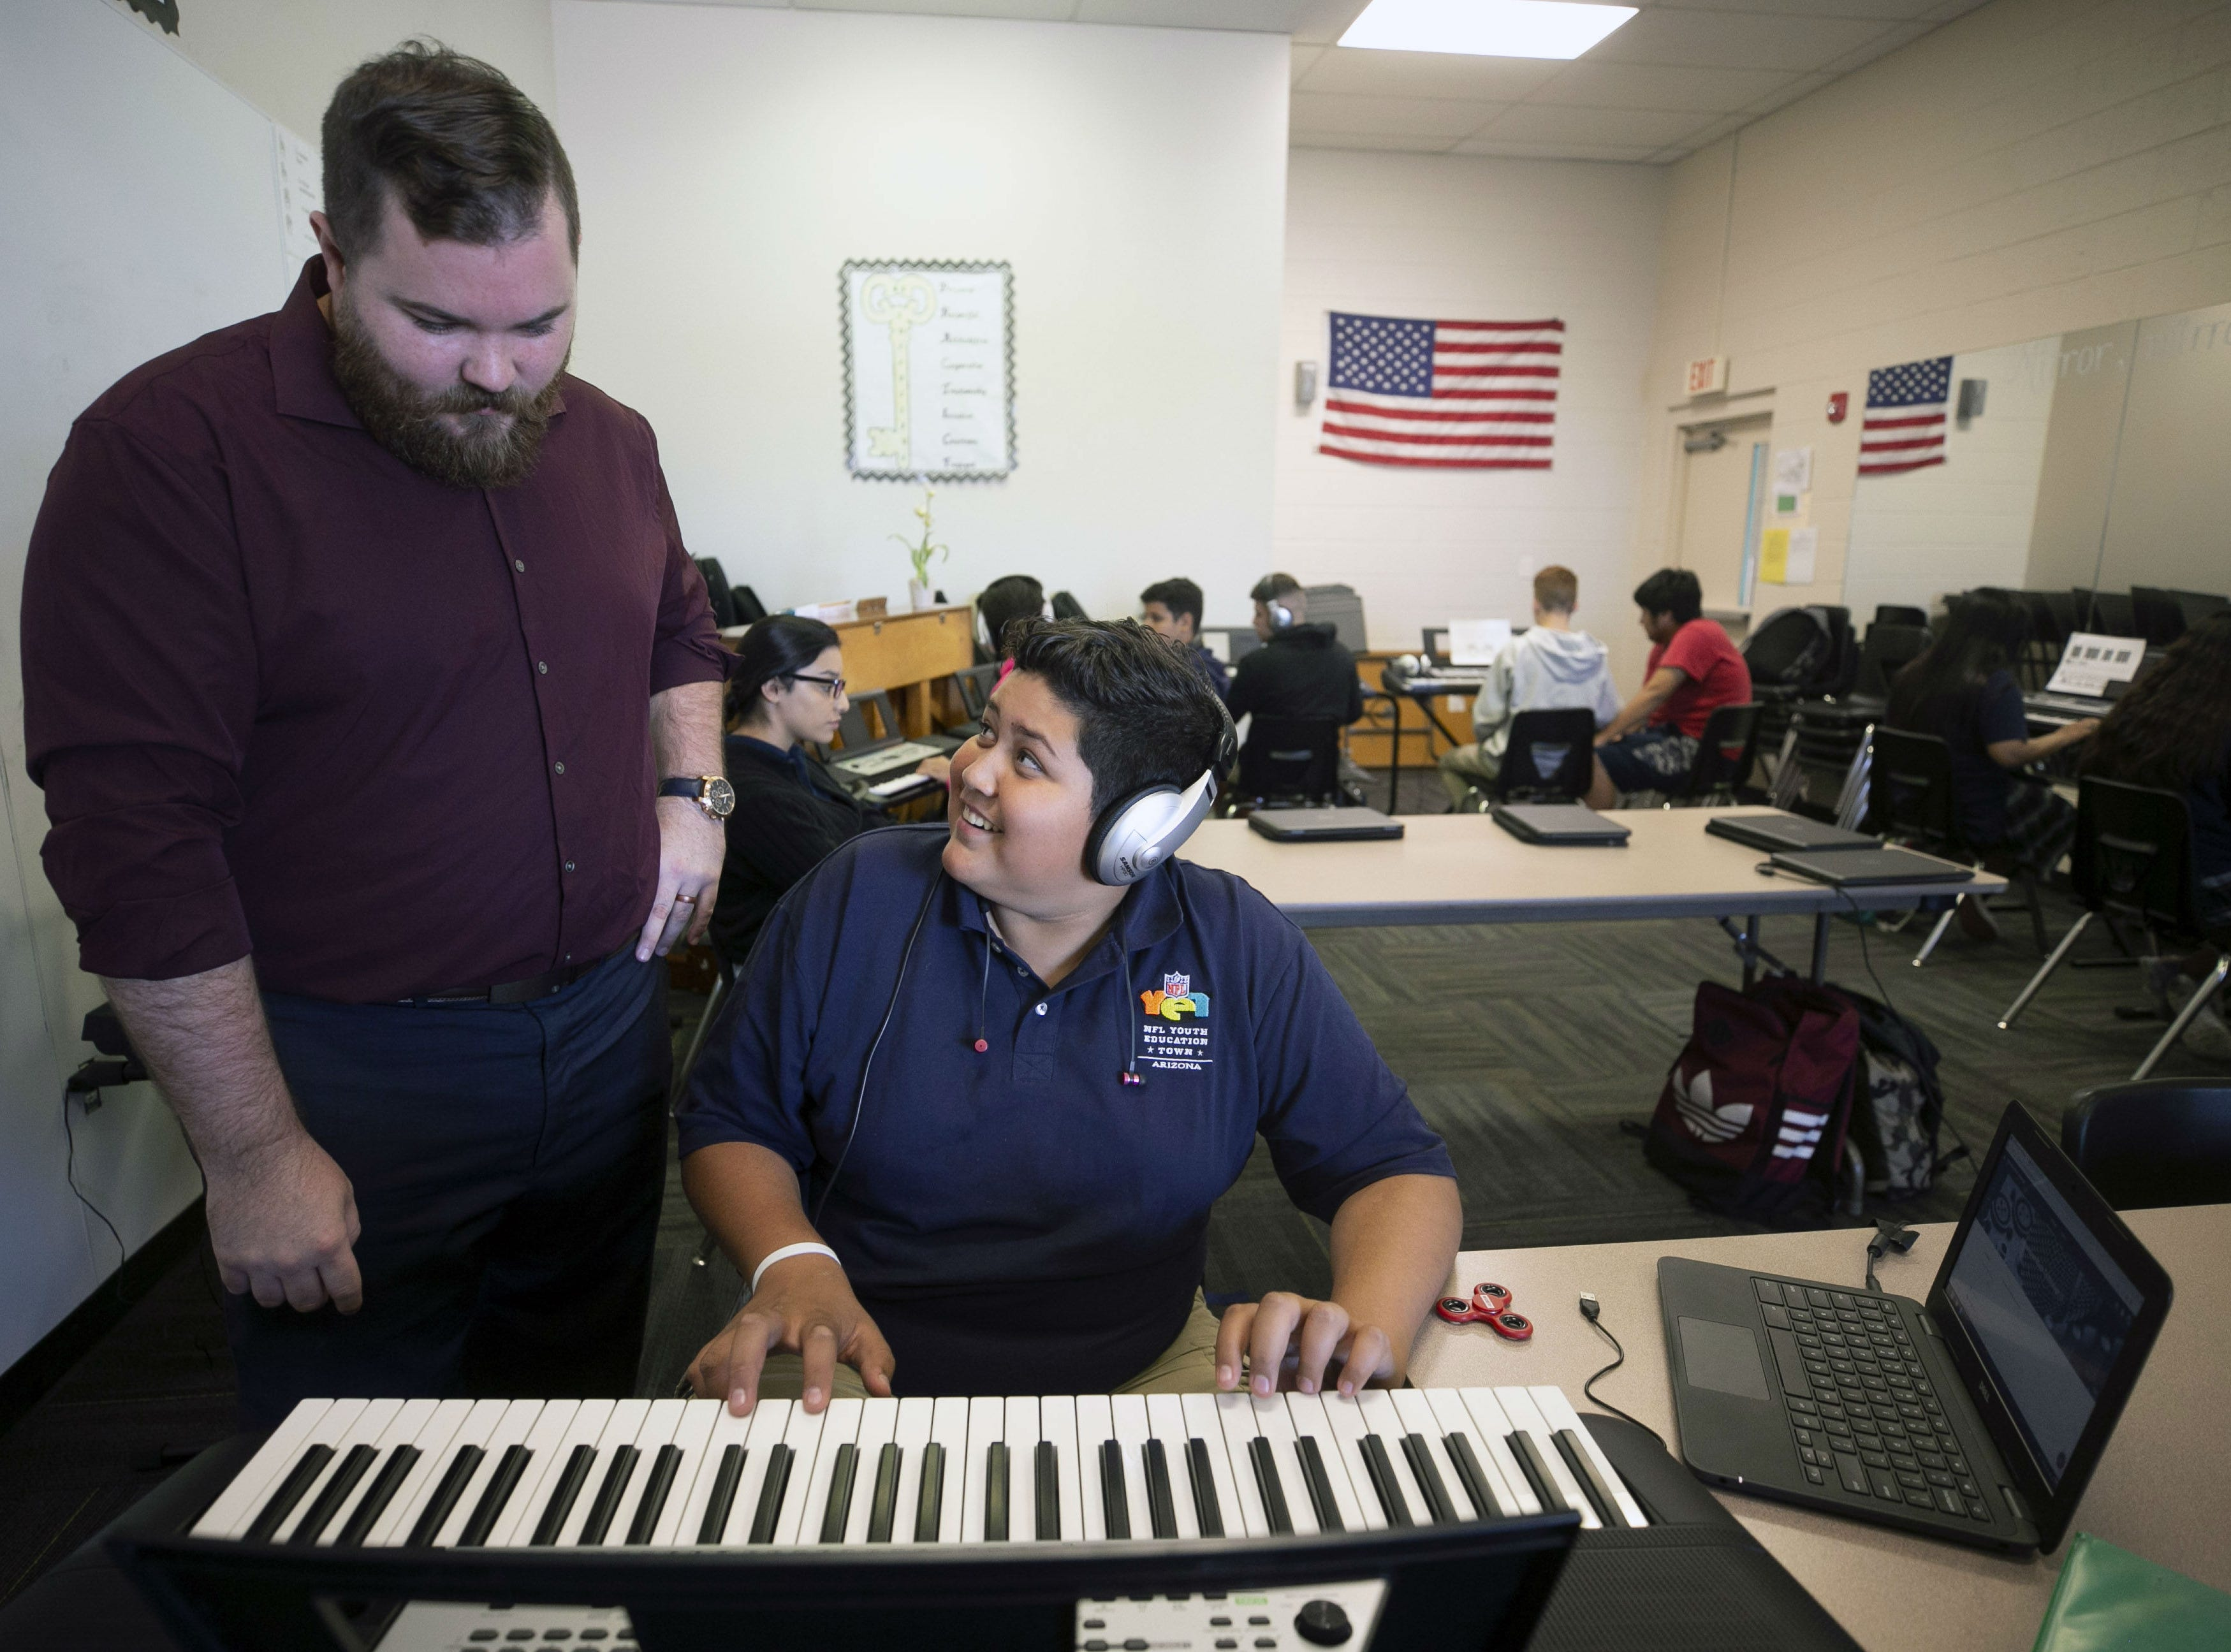 Music teacher Kenny Edmondson works with Jesus Camacho, 15, in music class at the NFL YET College Prep Academy, a seventh-12th grade charter school in south Phoenix, on Nov. 5, 2018.